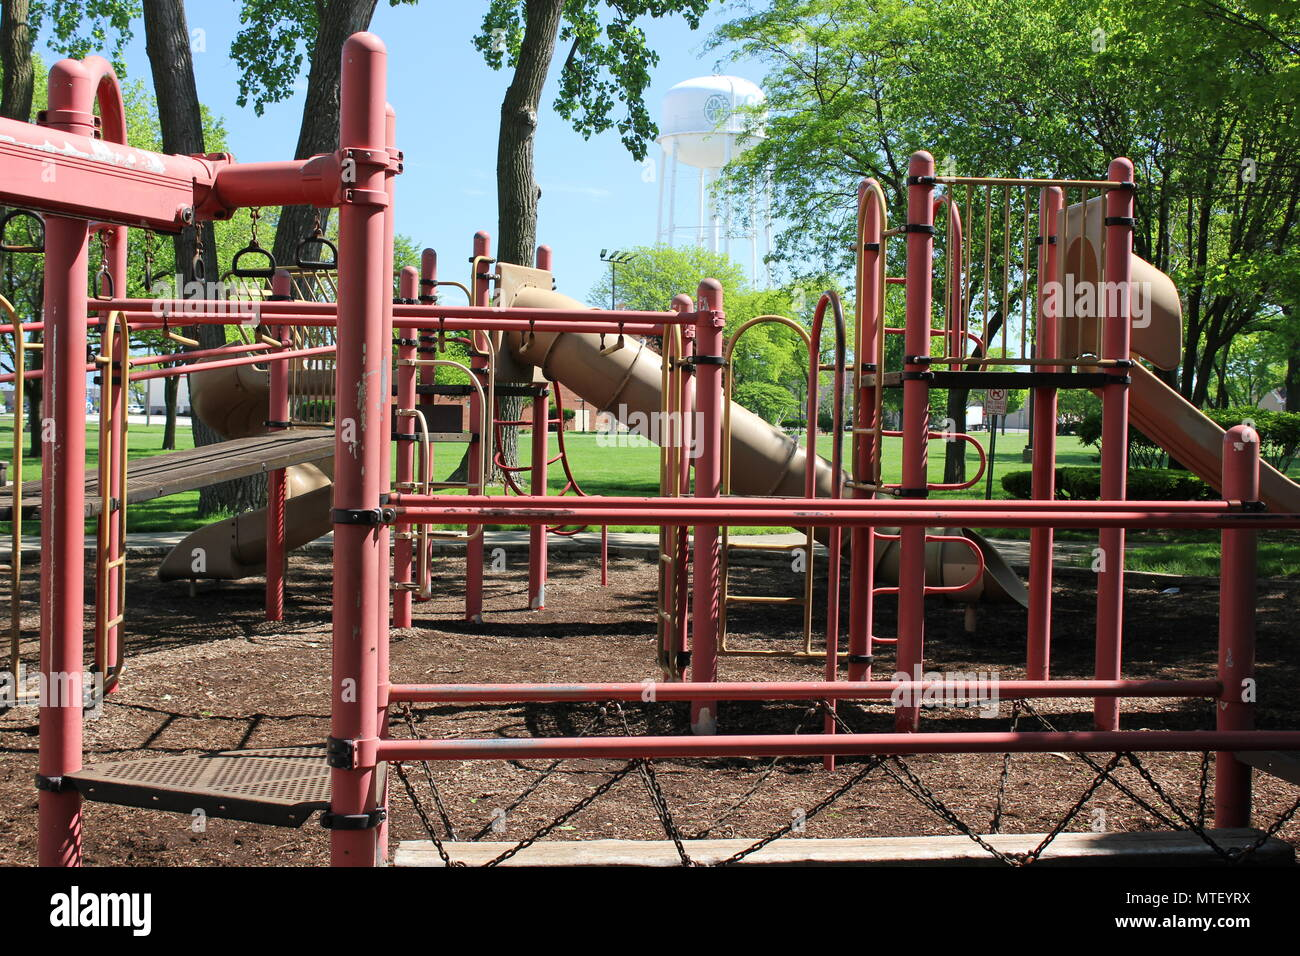 Golf Mill Park playground equipment and accessories in small-town Niles, Illinois on a hot sunny summer day. - Stock Image